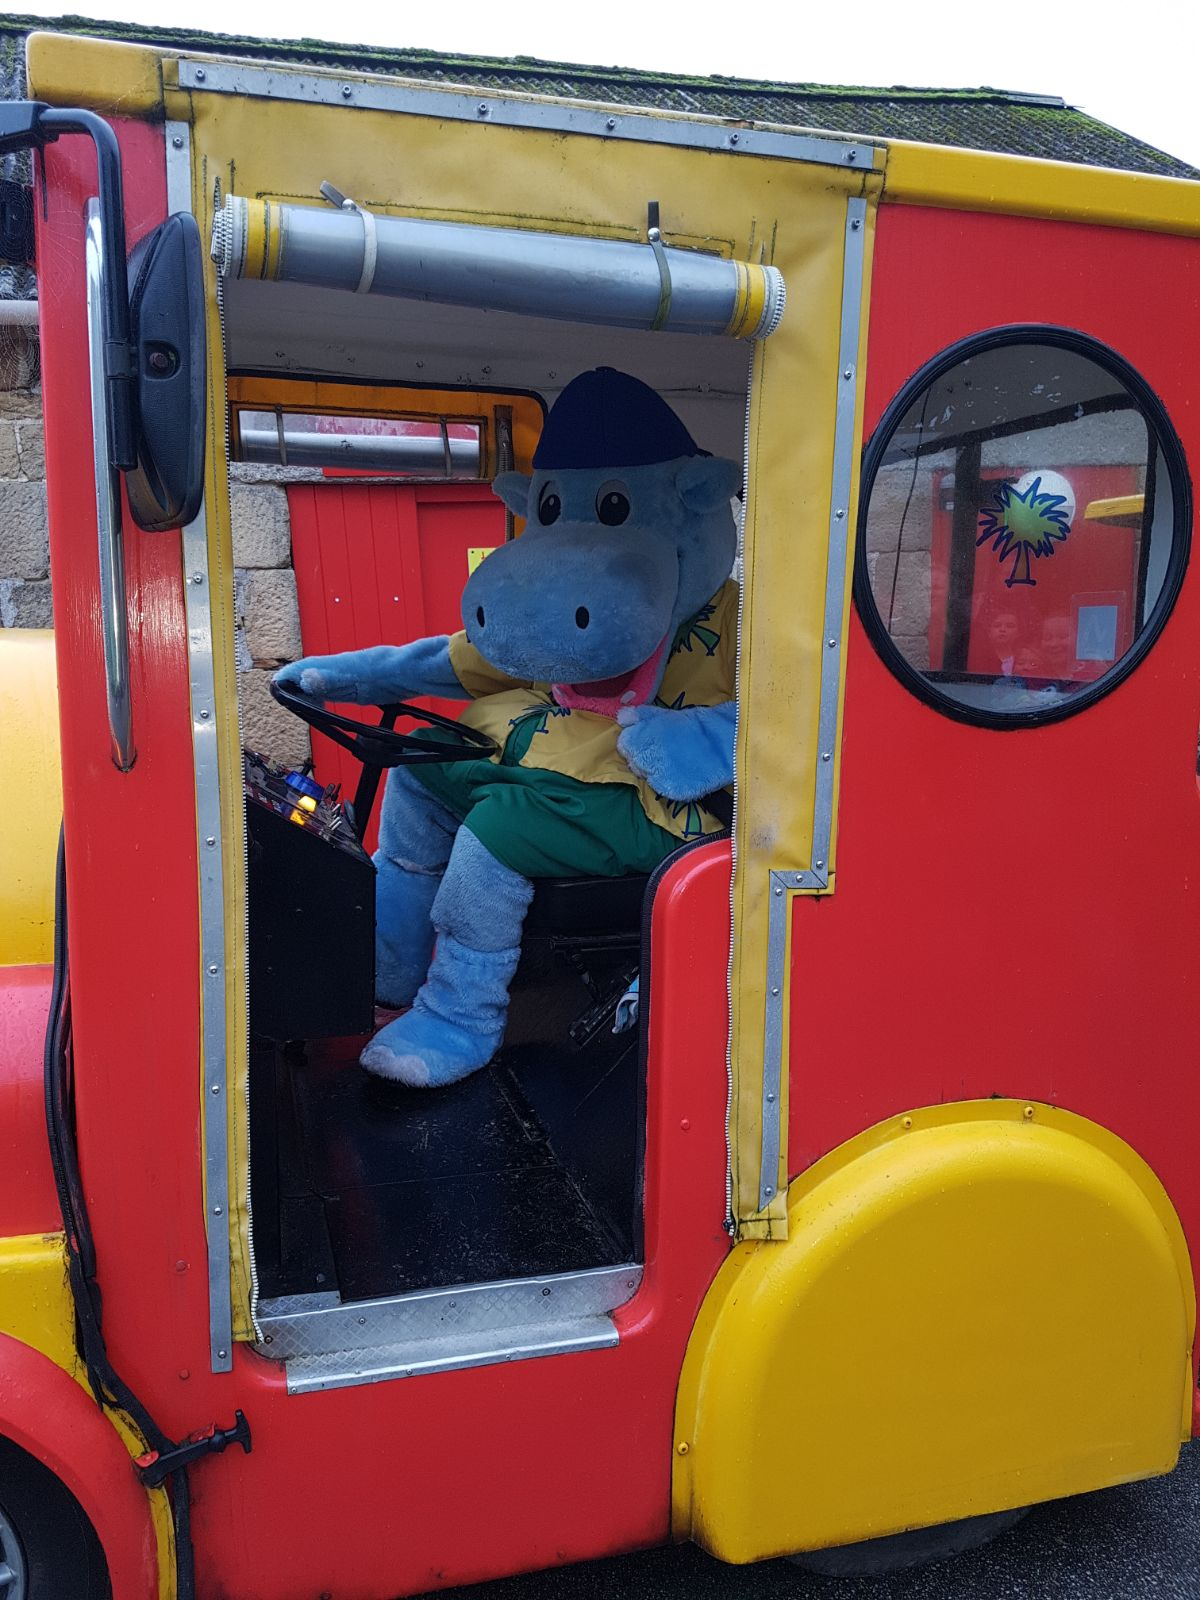 Henry driving the train.